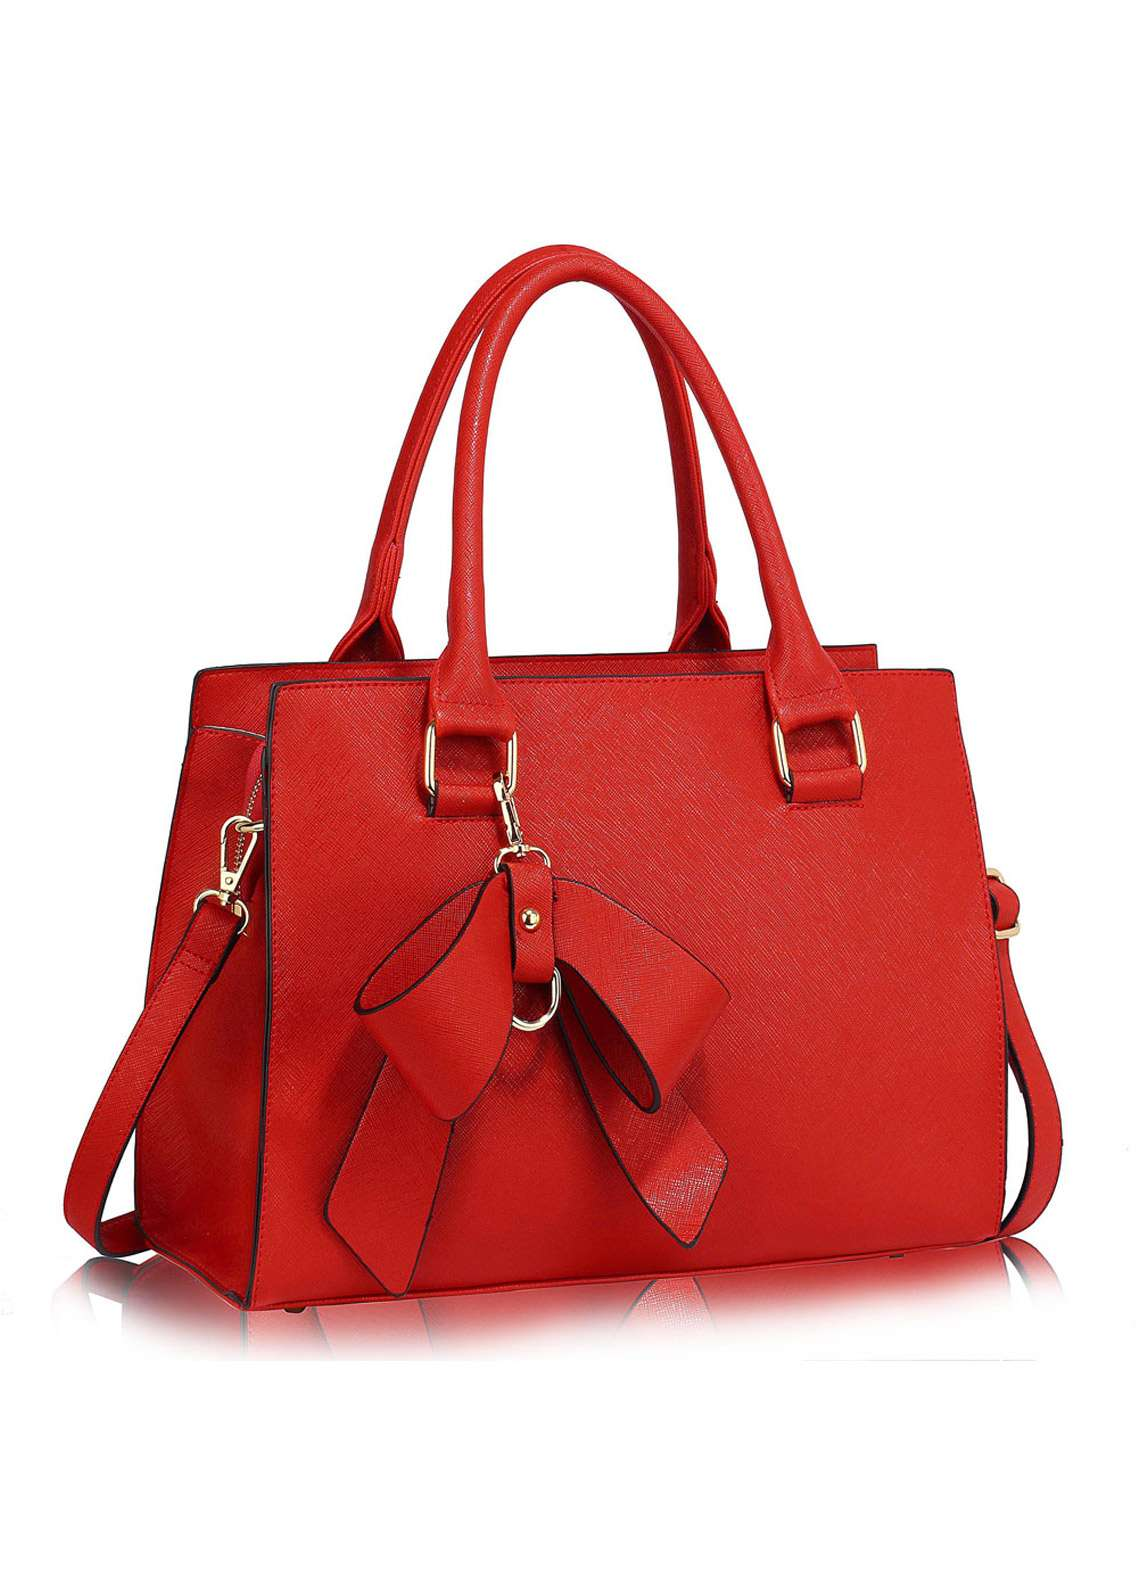 Leesun London Faux Leather Satchels Bags  for Women  Red with Bow Style